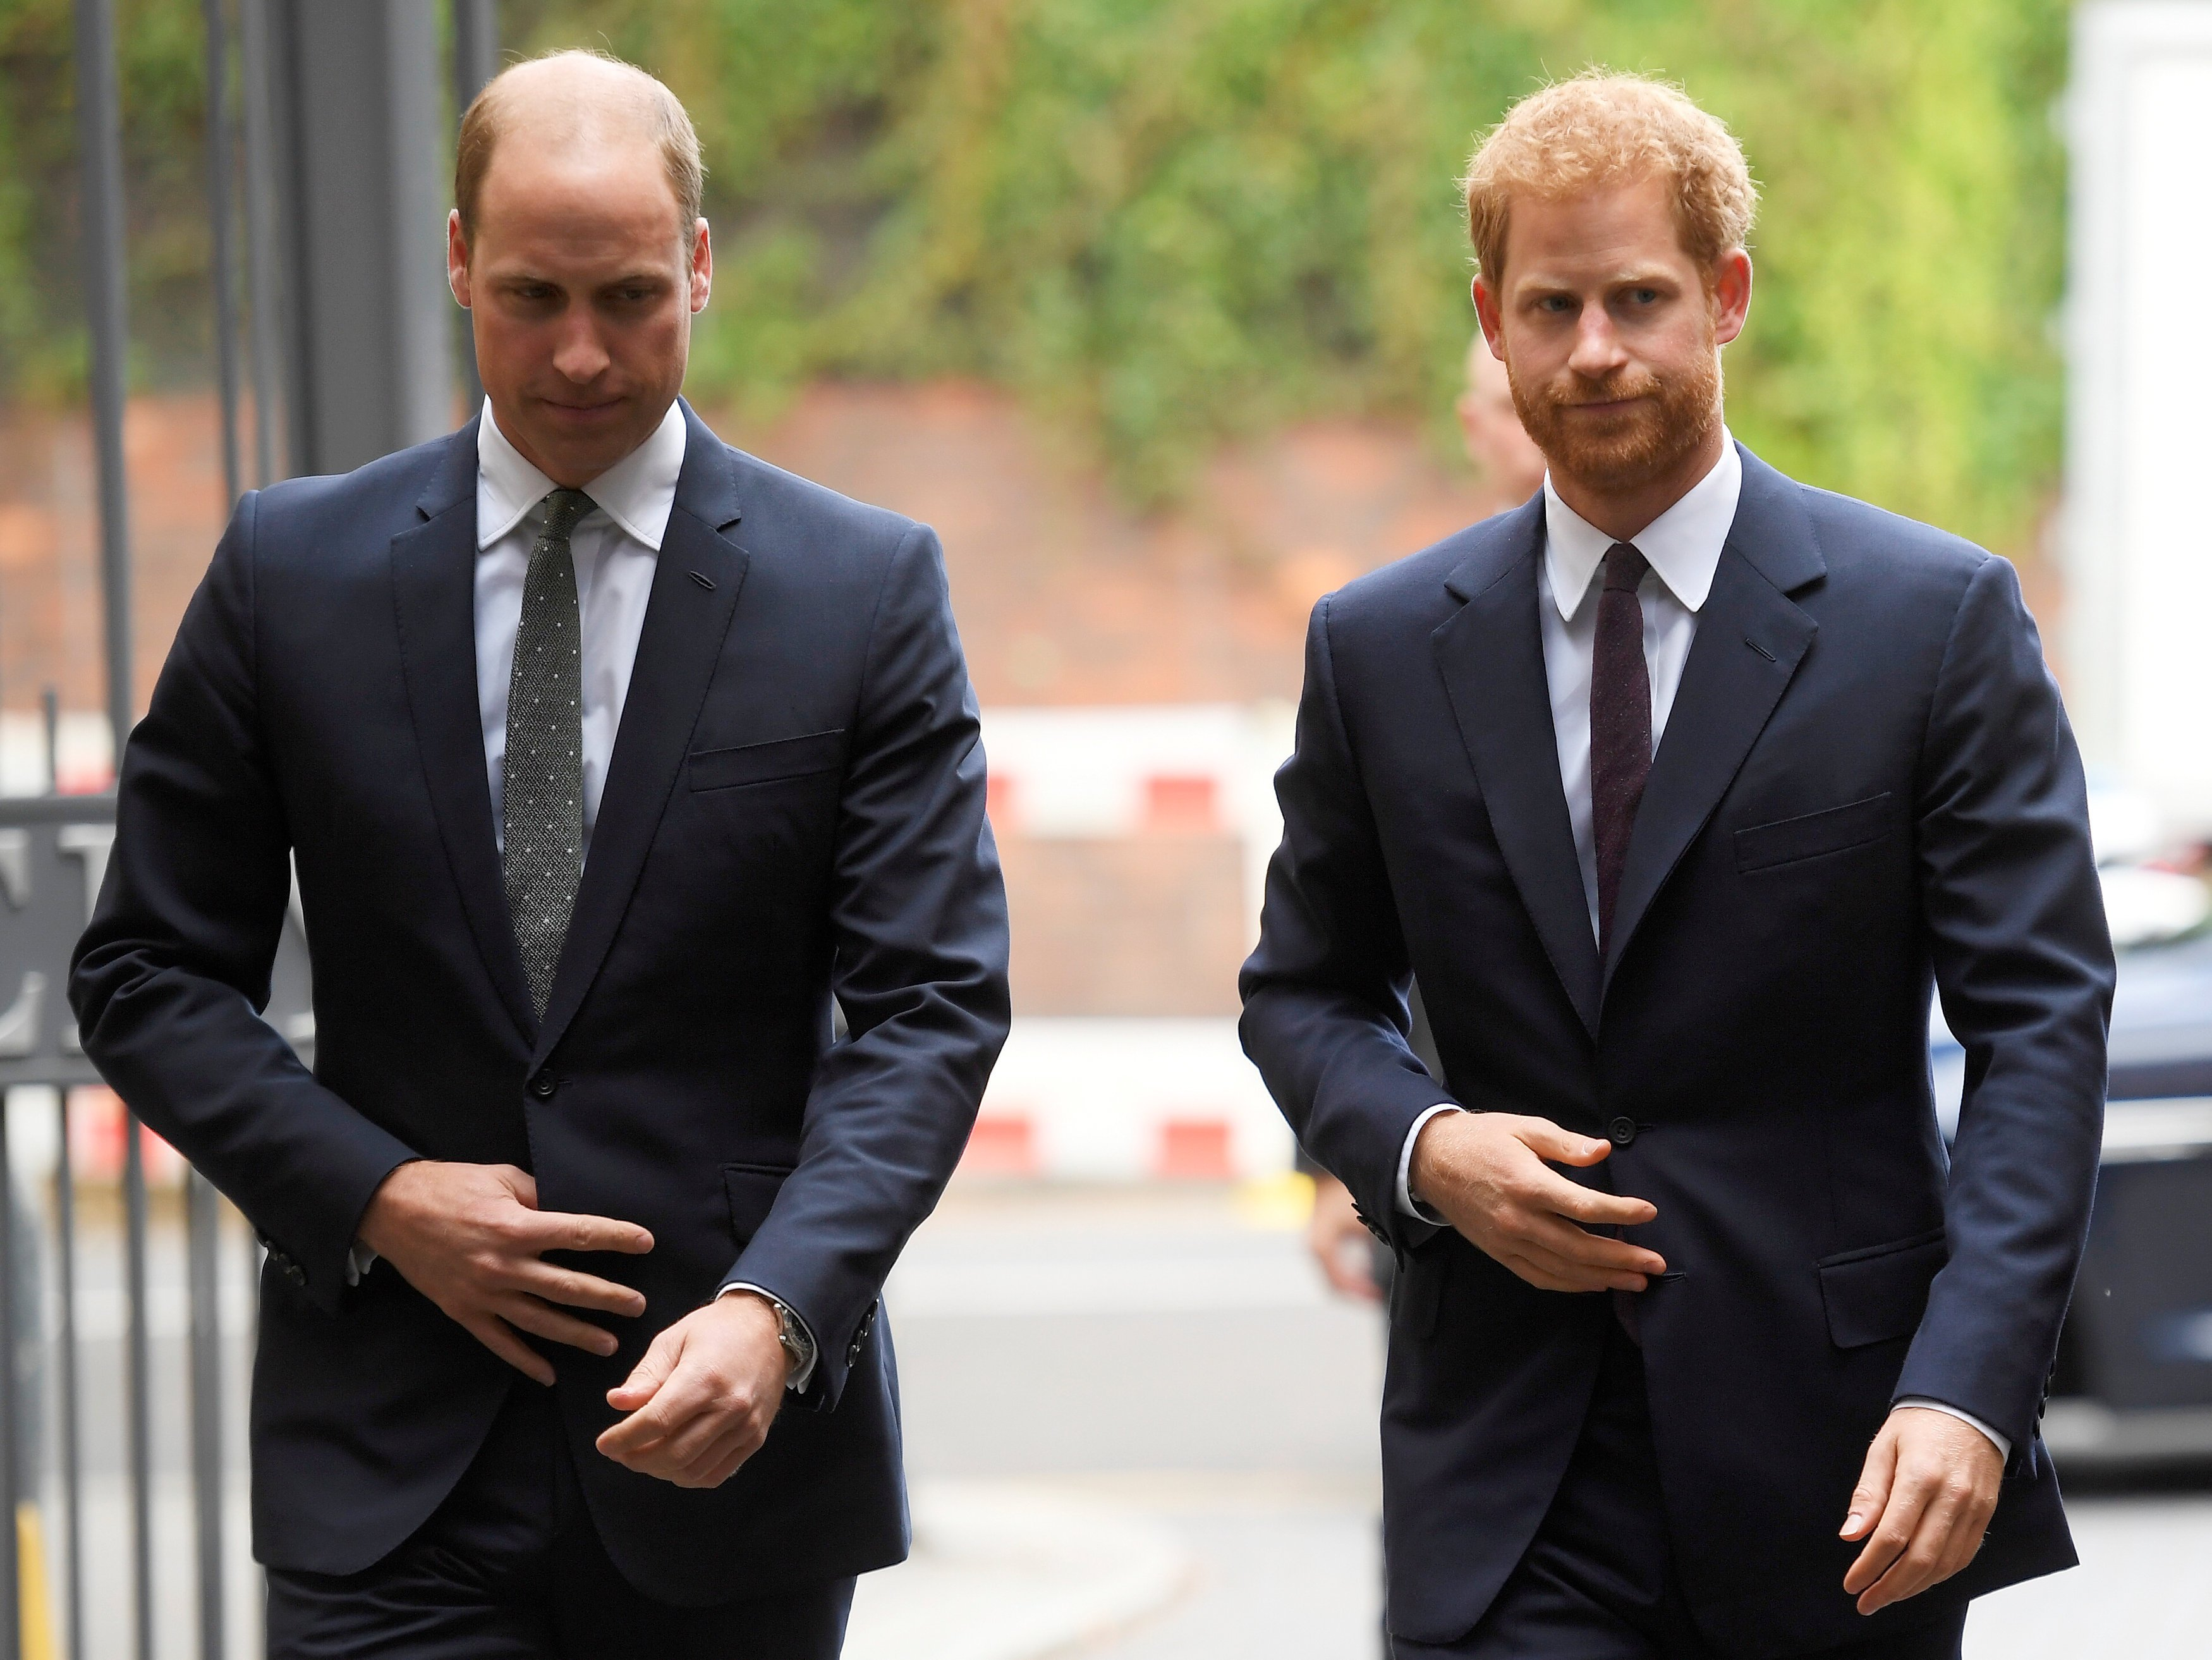 Prince William and Prince Harry at the Royal Foundation Support4Grenfell community hub on September 5, 2017 in London, England. | Source: Getty Images